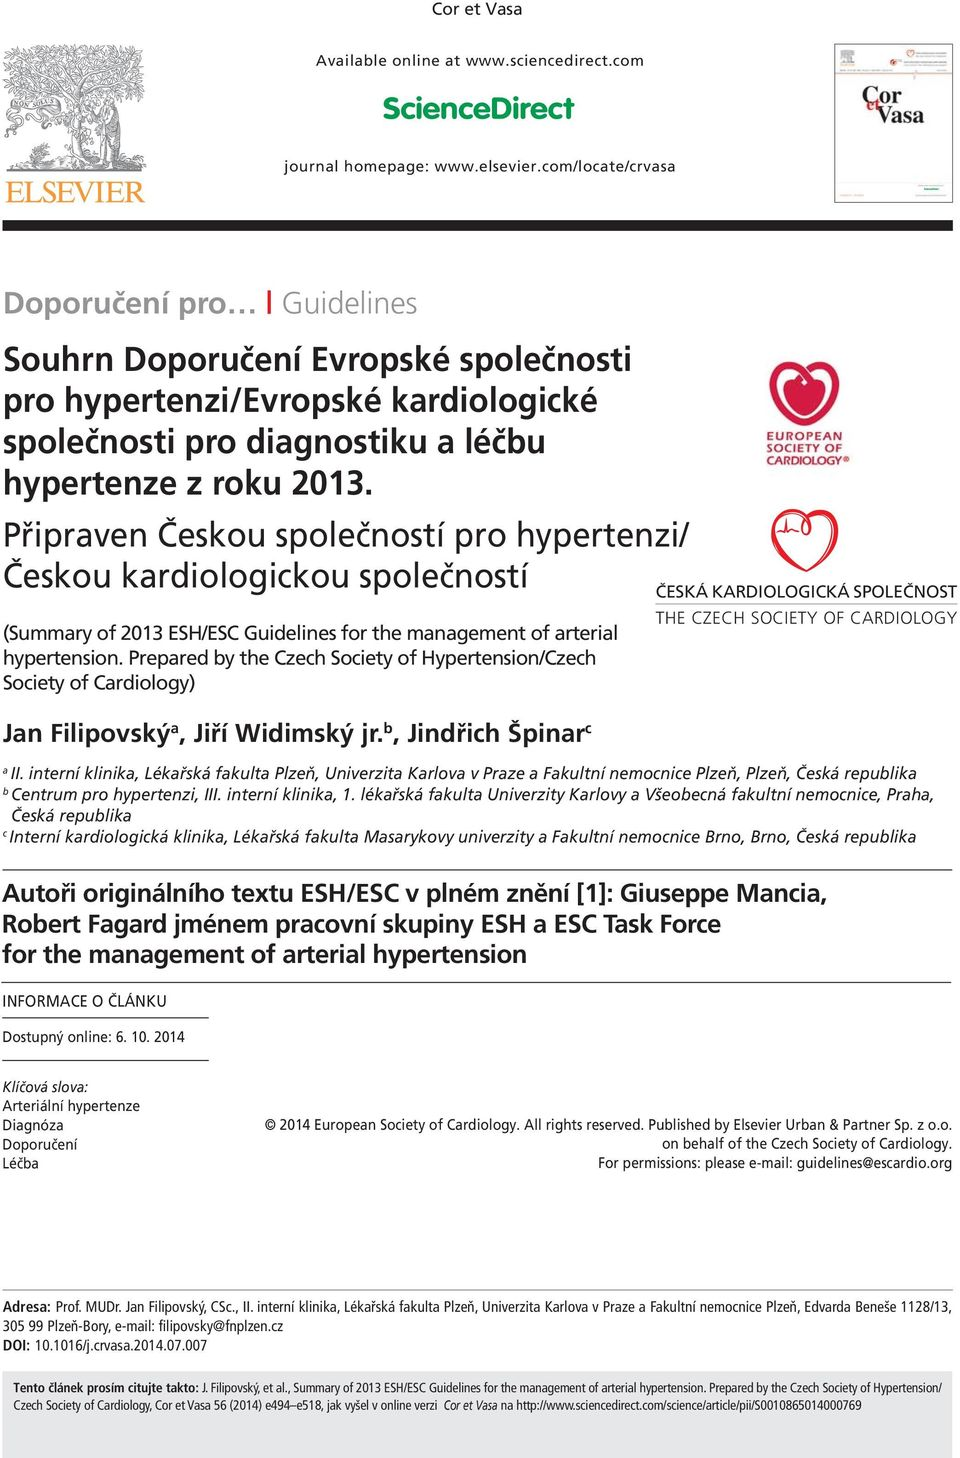 Připrven Českou společností pro hypertenzi/ Českou krdiologickou společností (Summry of 2013 ESH/ES Guidelines for the mngement of rteril hypertension.